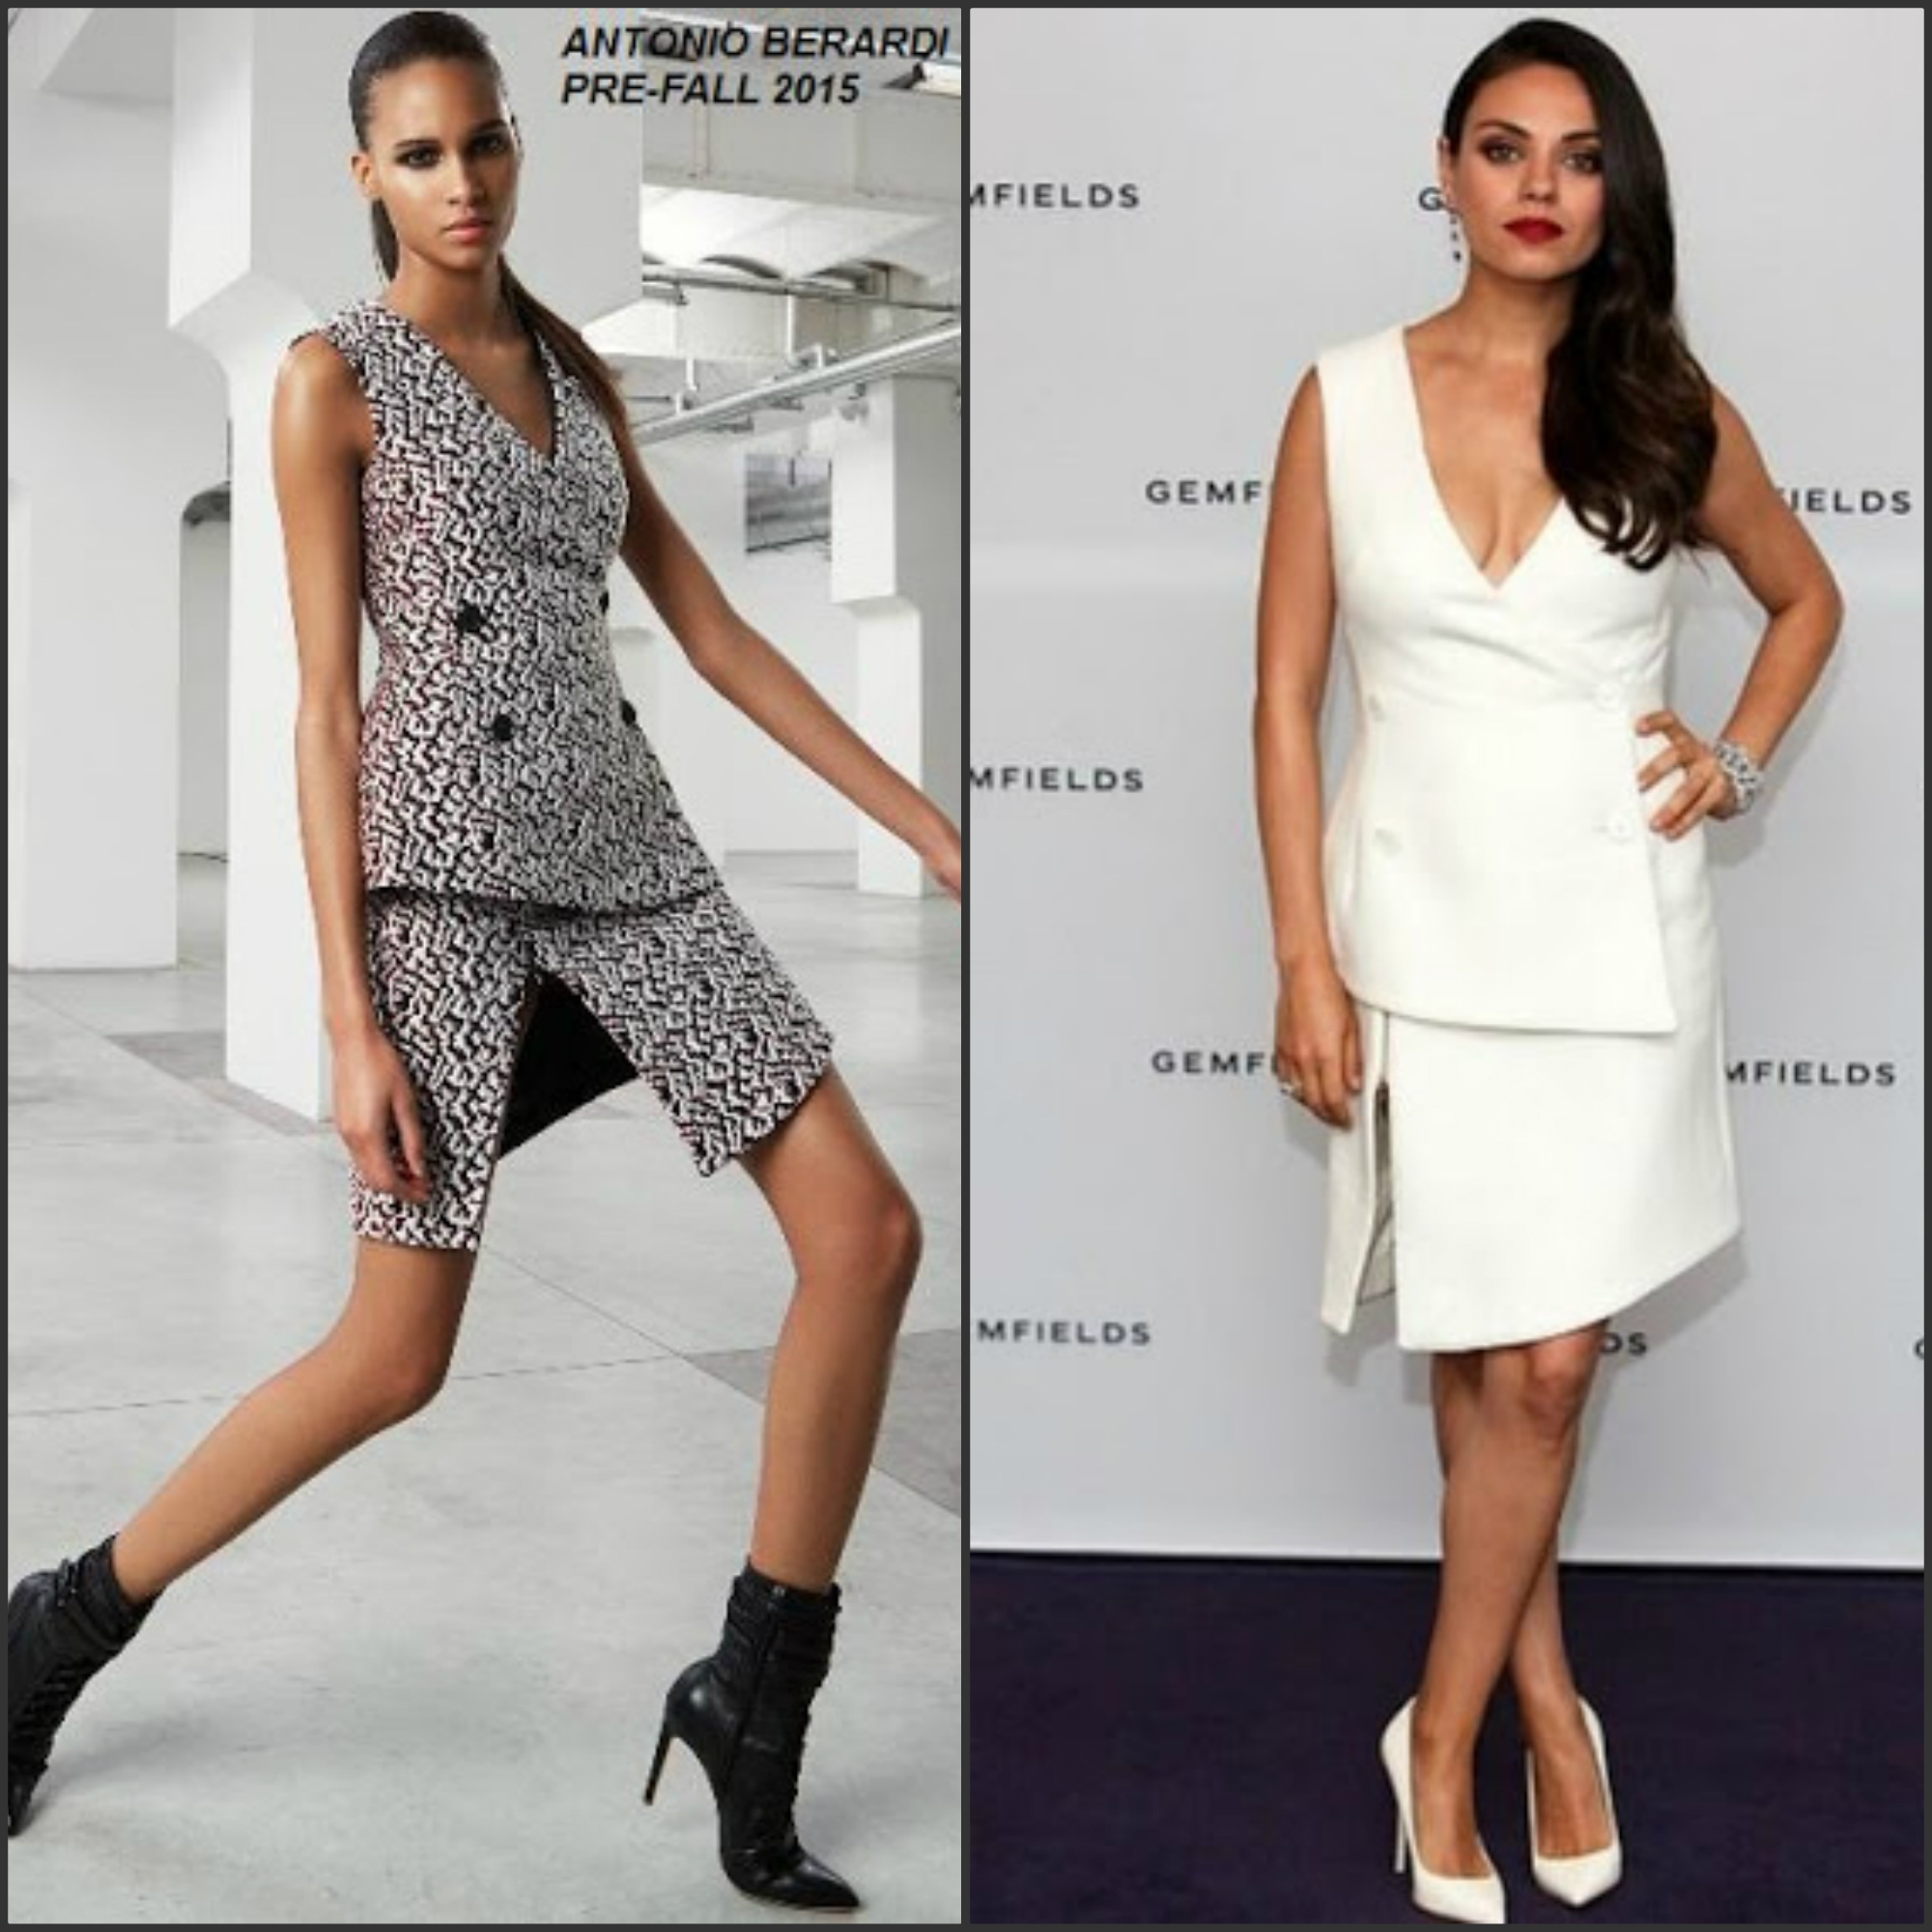 mila-kunis-in-antonio-berardi-at-gemfields-ruby-launch-event